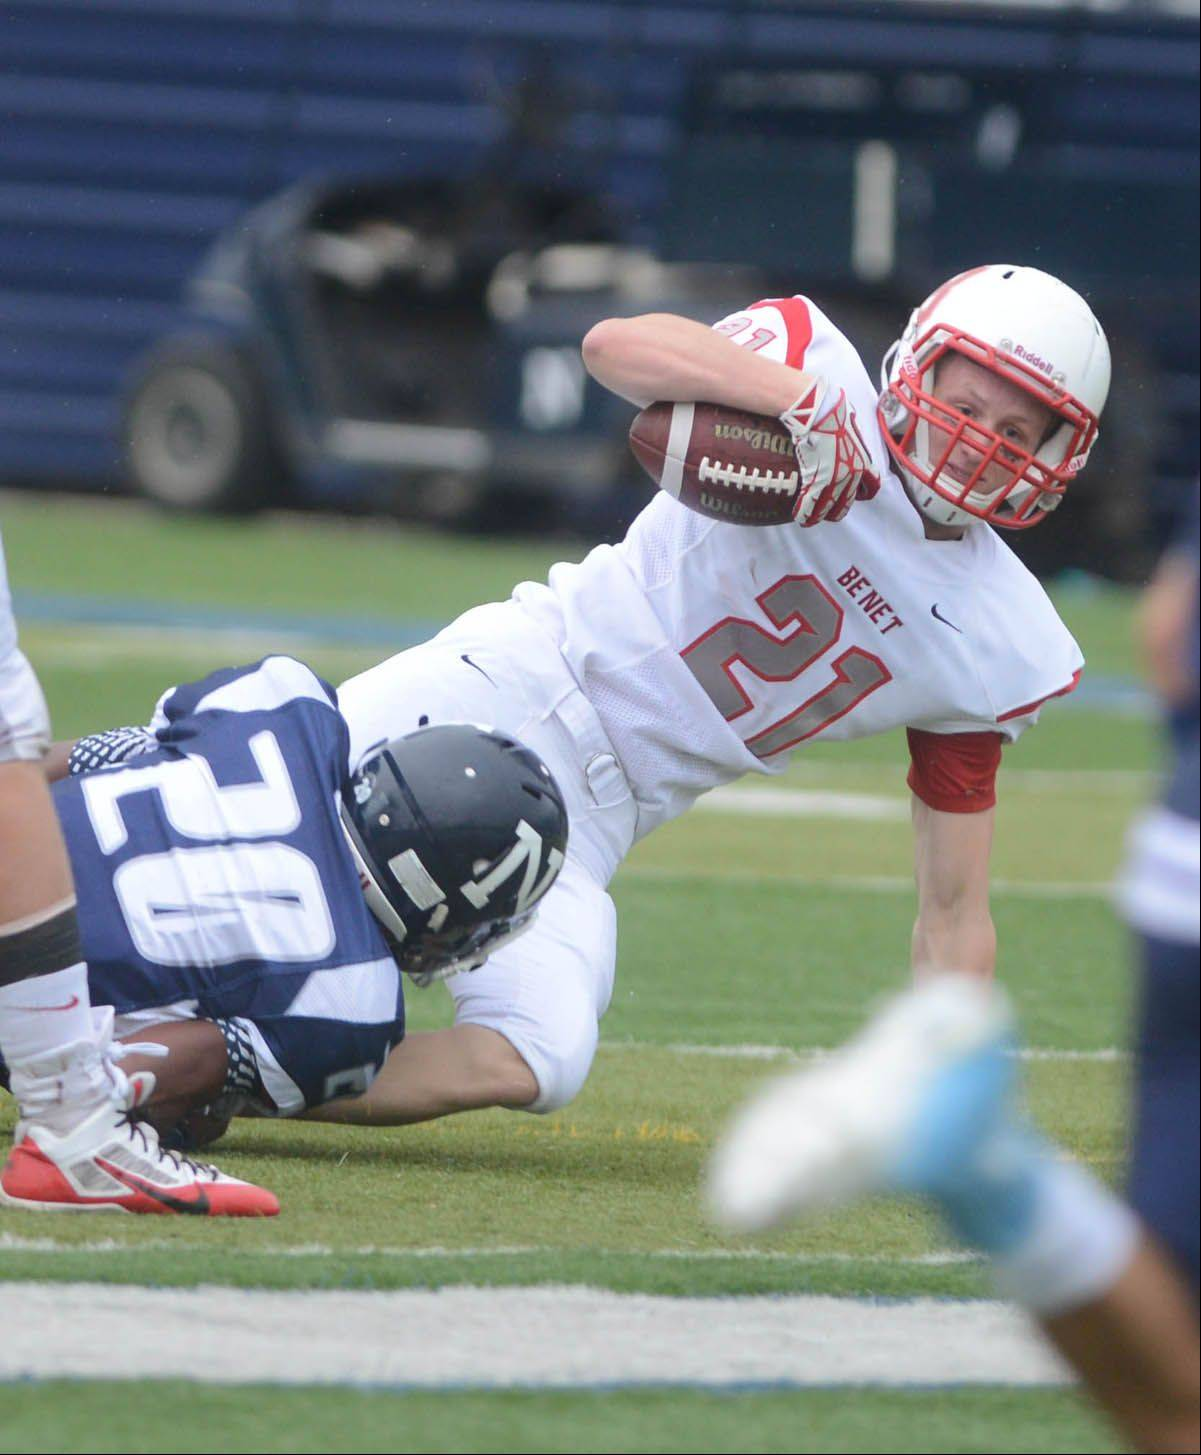 Ryan Parks of Benet is pulled down during the Benet at Nazareth football game Saturday.